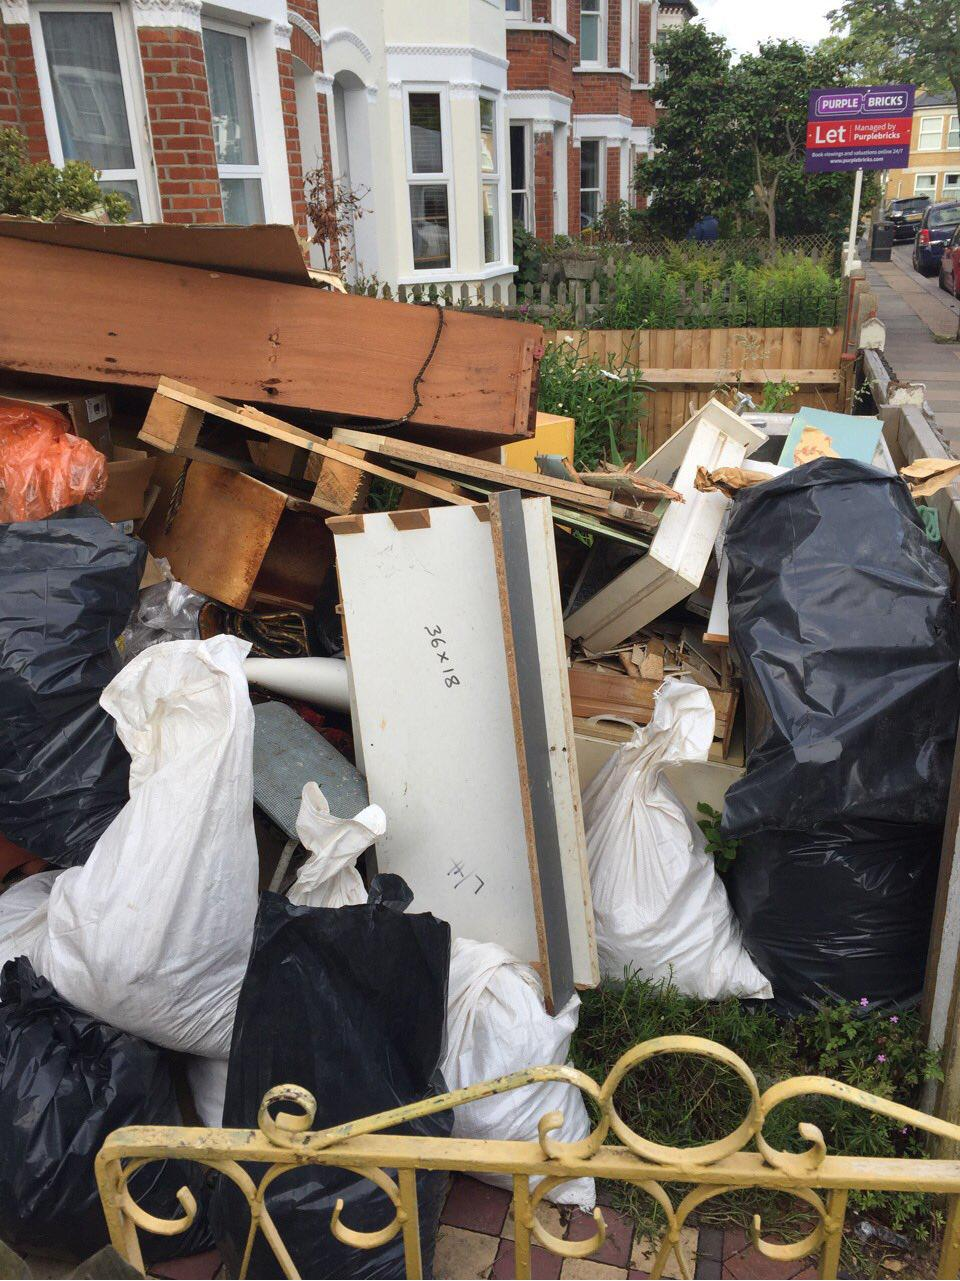 Oakleigh Park clearing waste collection N20